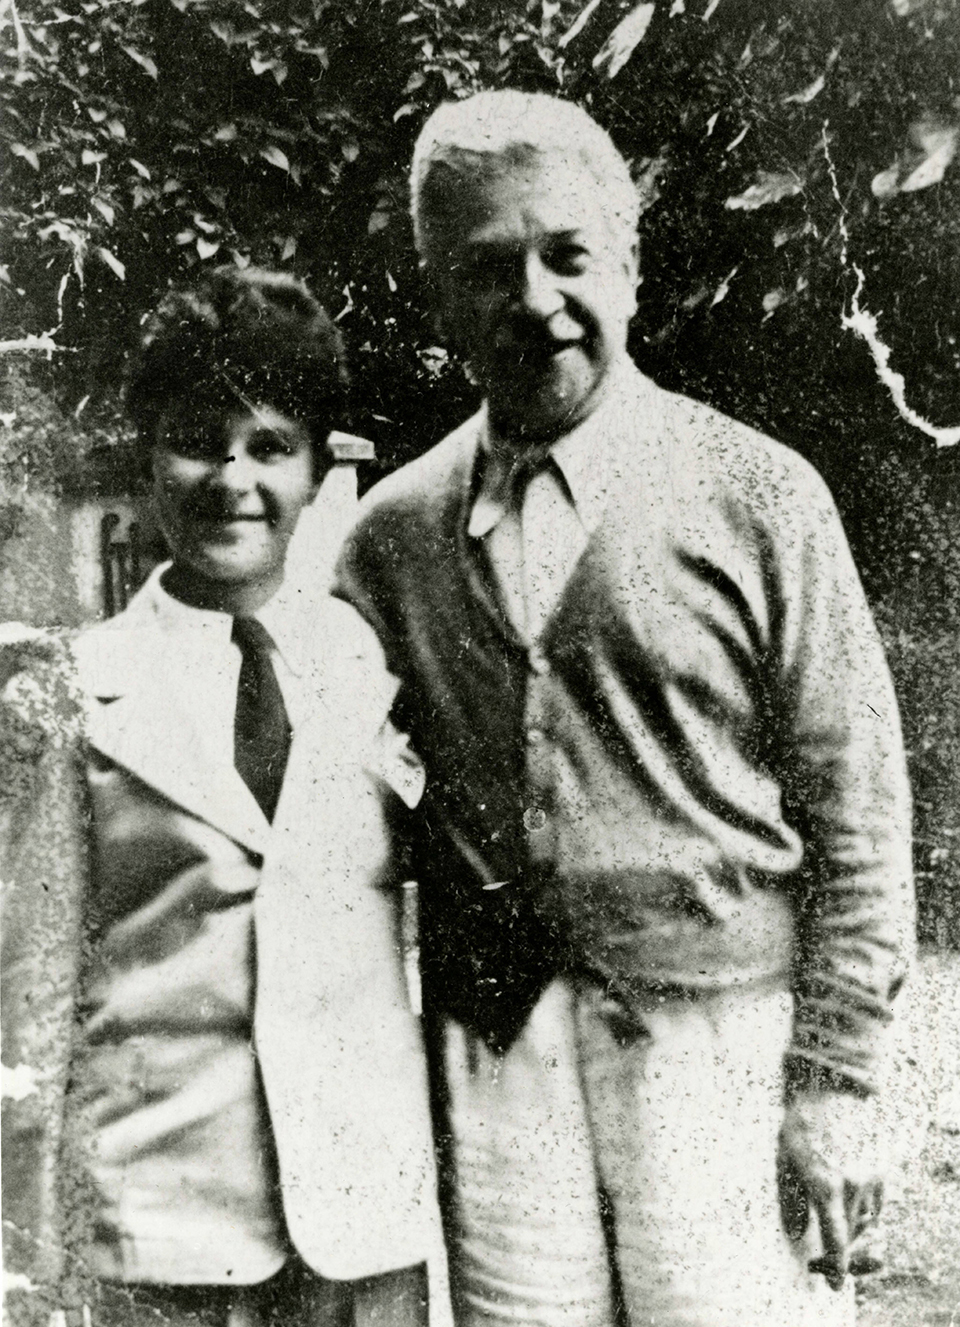 Leon Fleisher as a boy with his teacher, Artur Schnabel, at Schnabel's home on Lake Como in the late 1930s. (The Arthur Friedheim Library at the Peabody Institute of the Johns Hopkins University.)